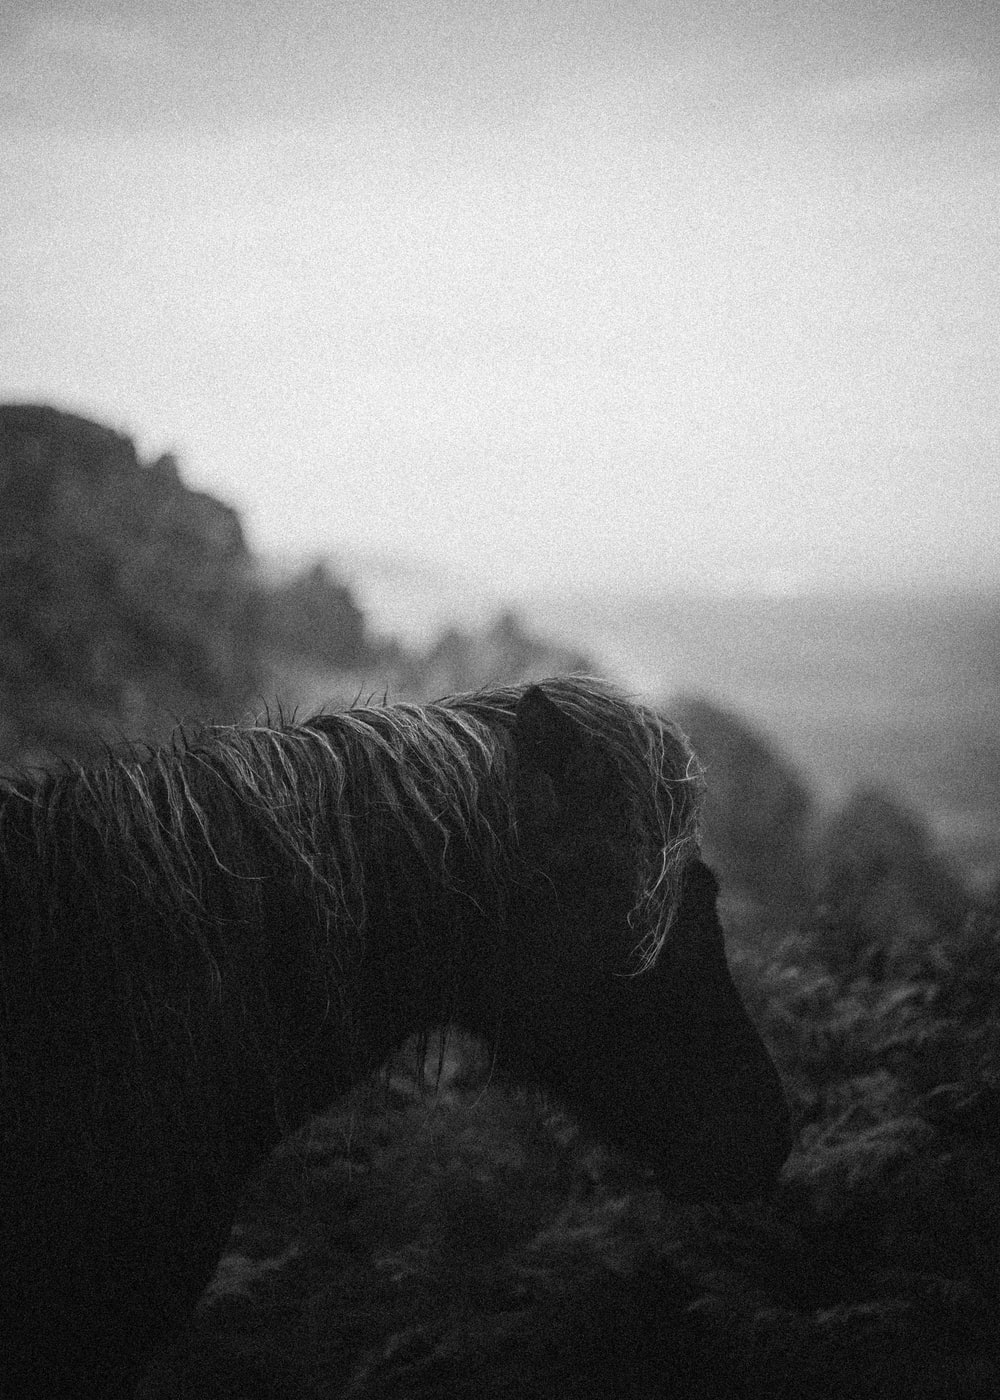 grayscale photo of a horse on a hill